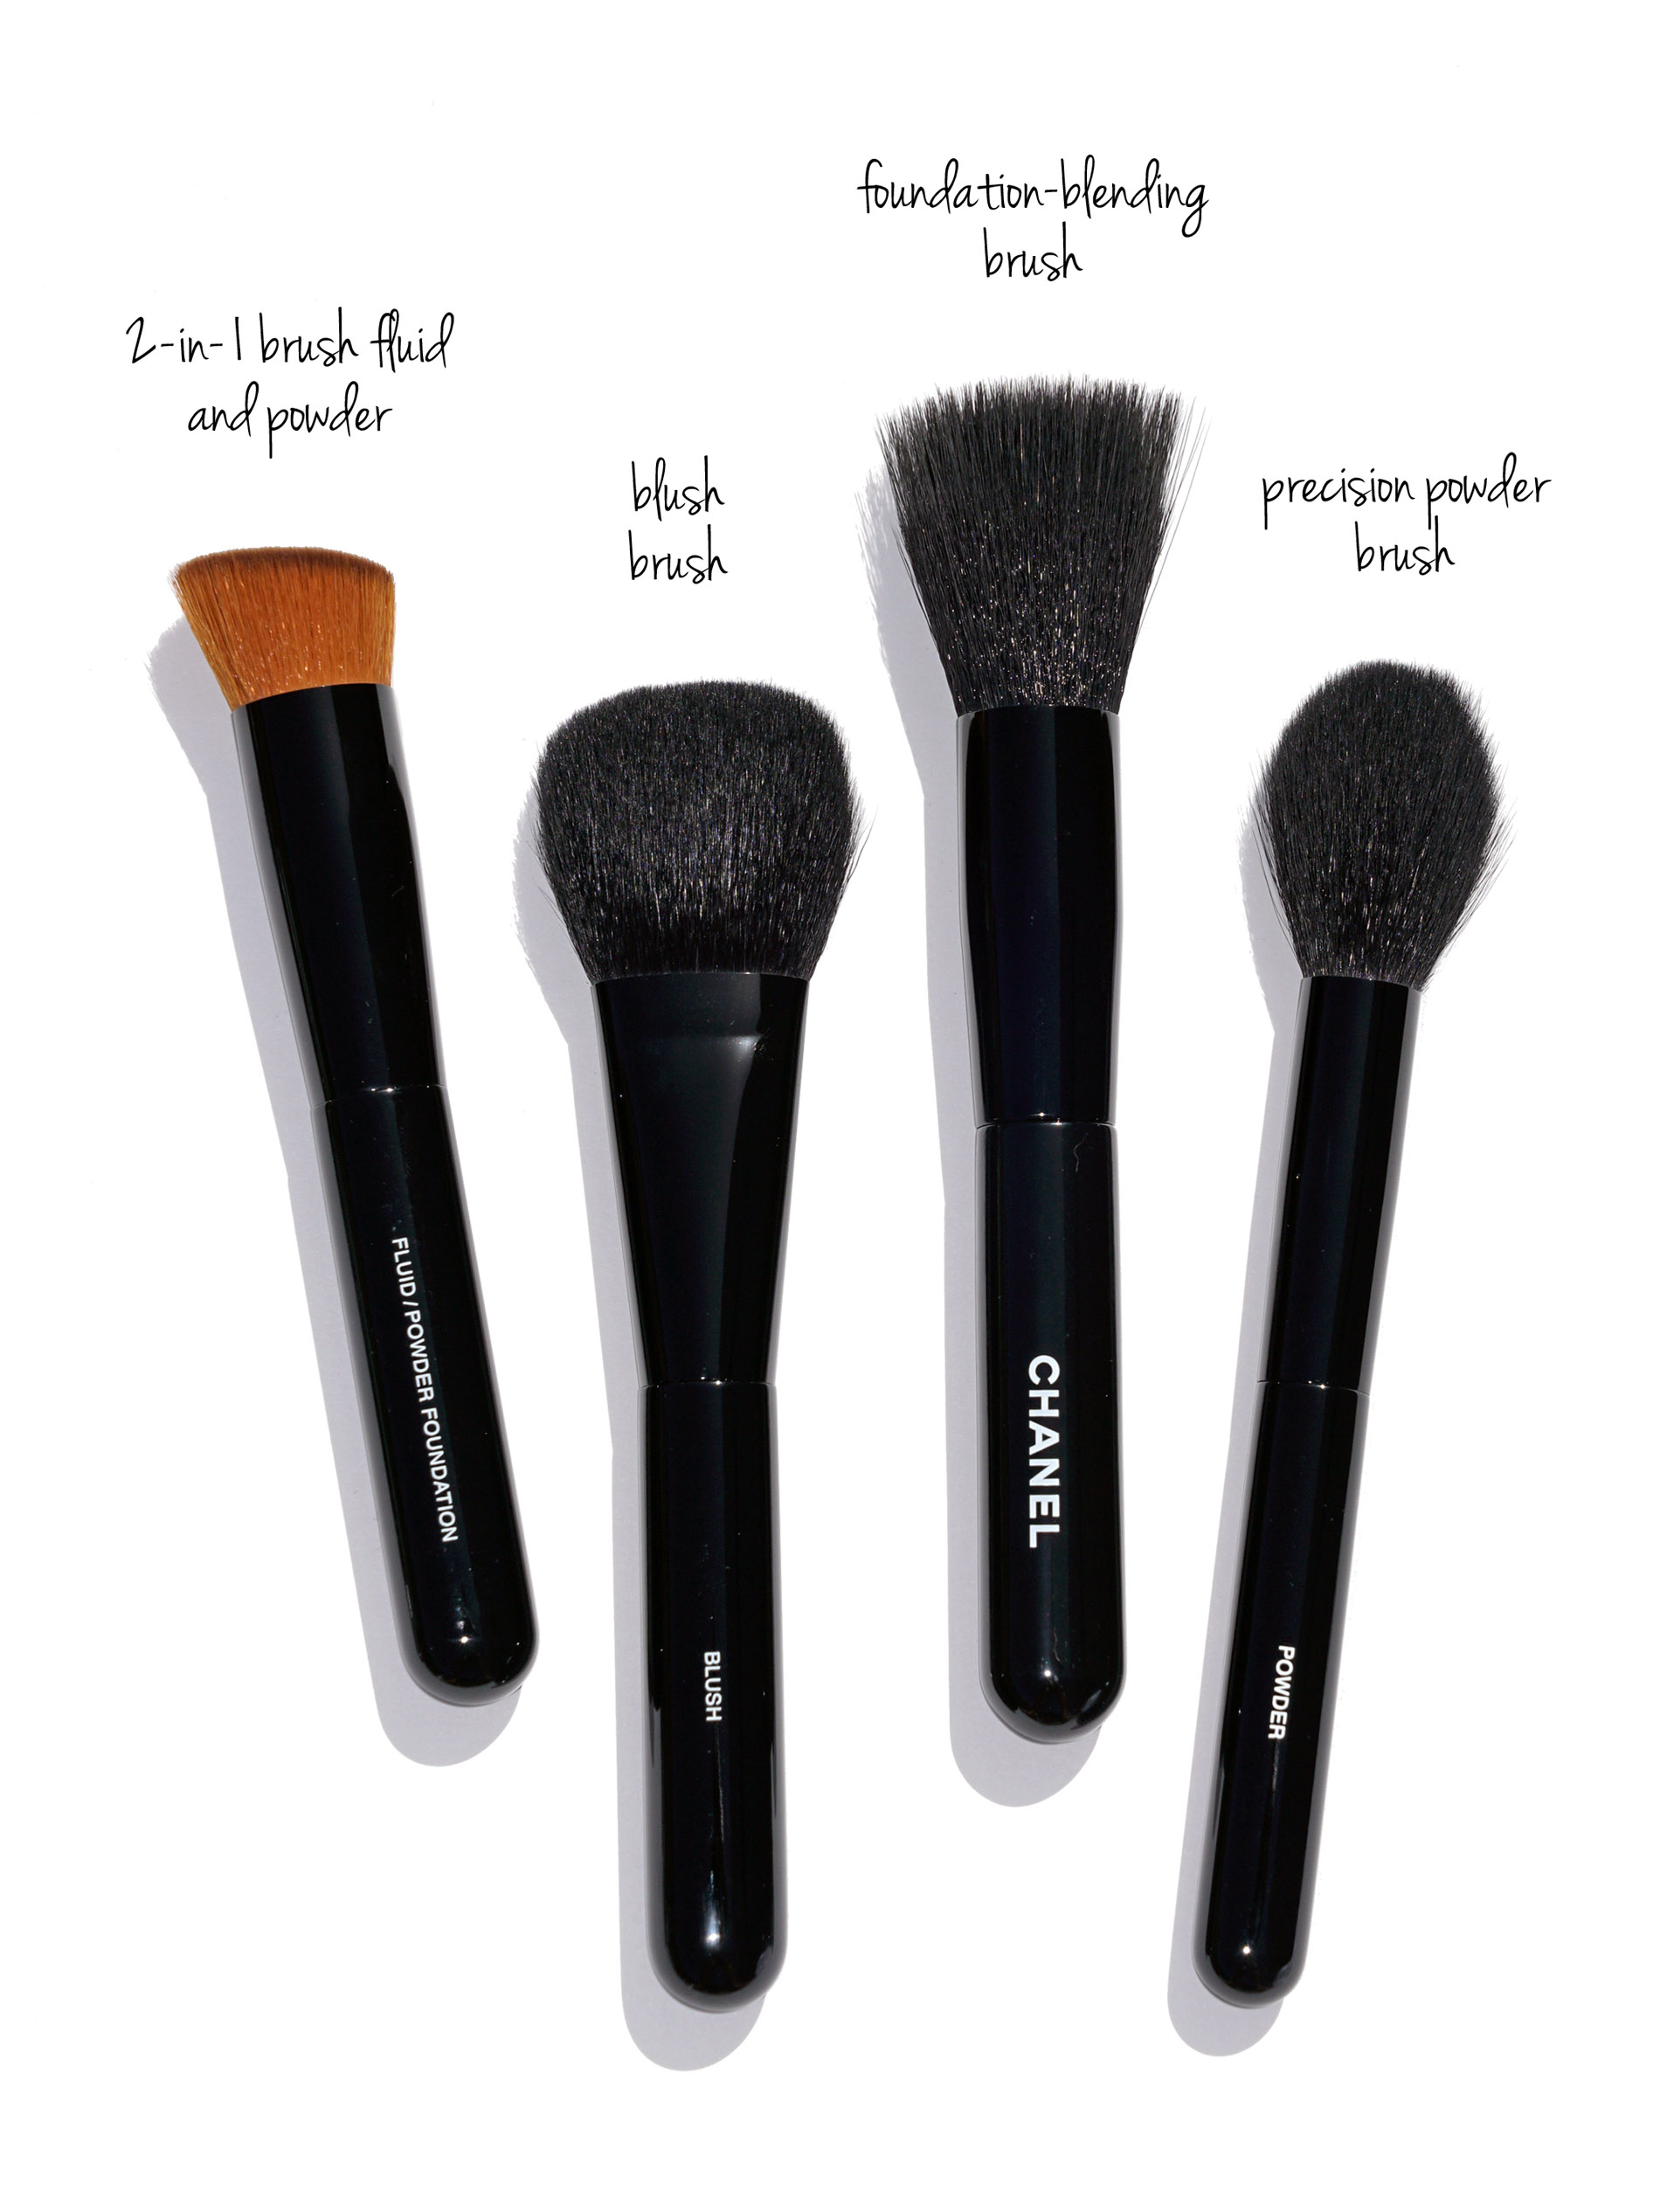 Chanel Makeup Brushes - New Design - The Beauty Look Book